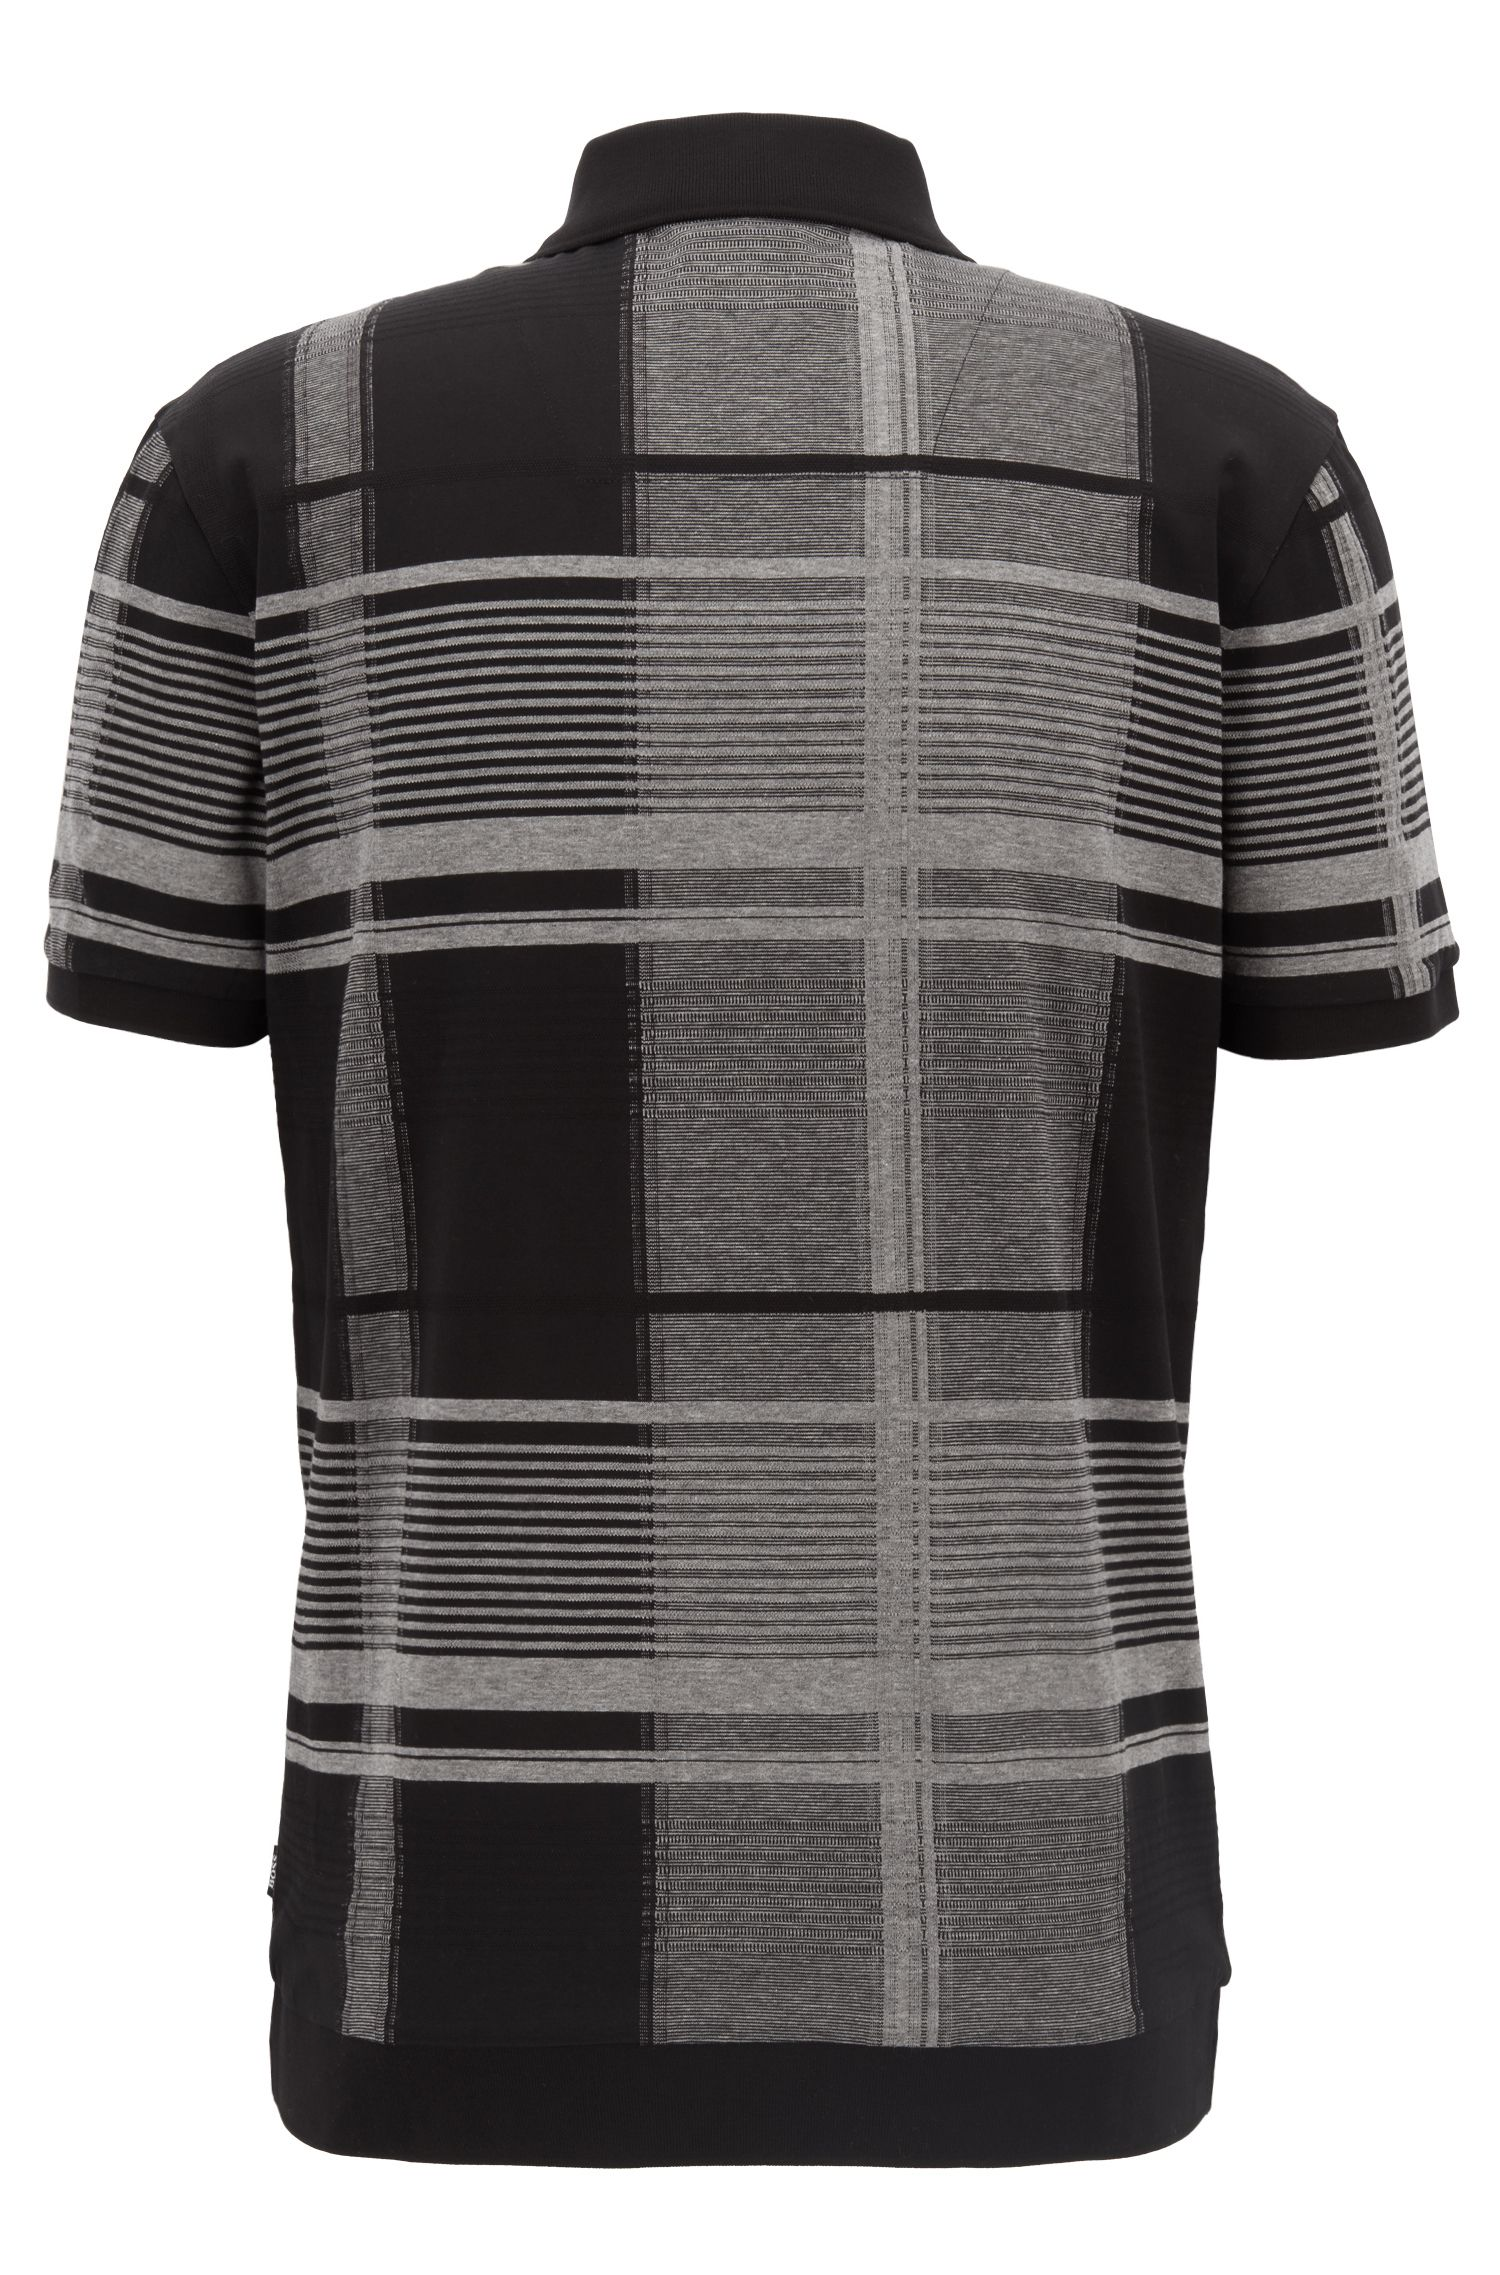 Windowpane check polo shirt in mercerised-cotton fil-coupé intarsia, Black